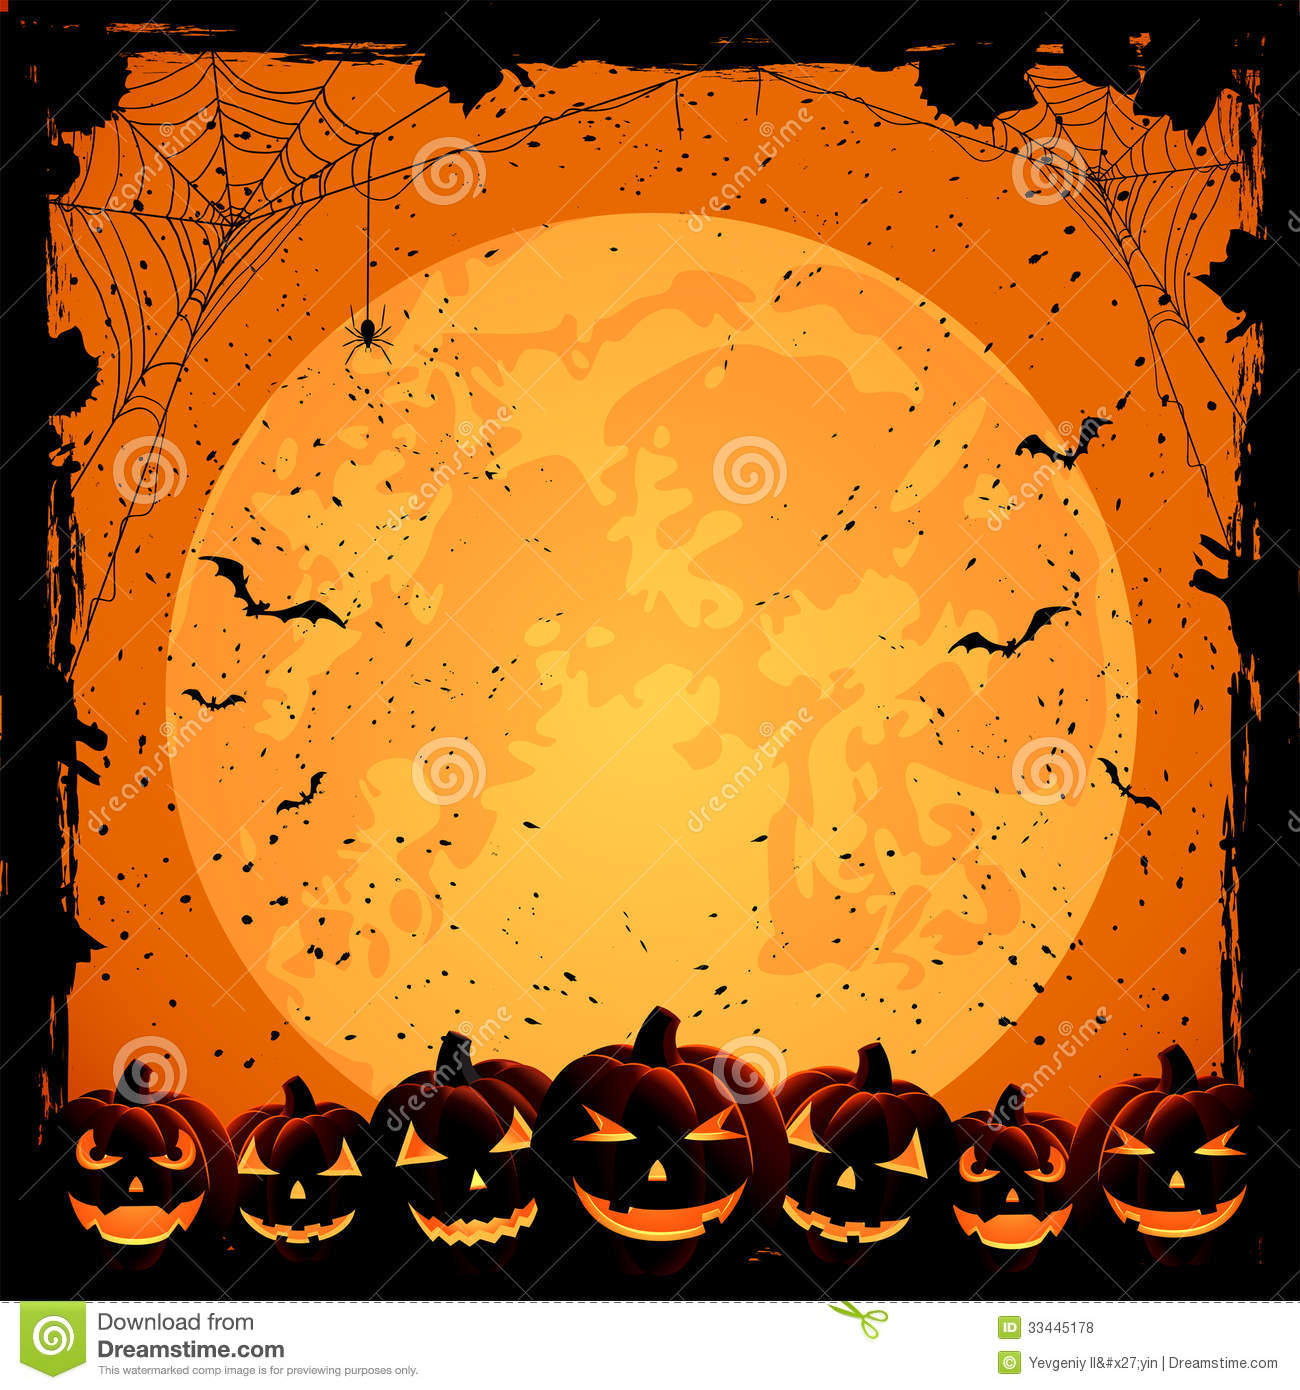 background full halloween illustration - Halloween Background Images Free